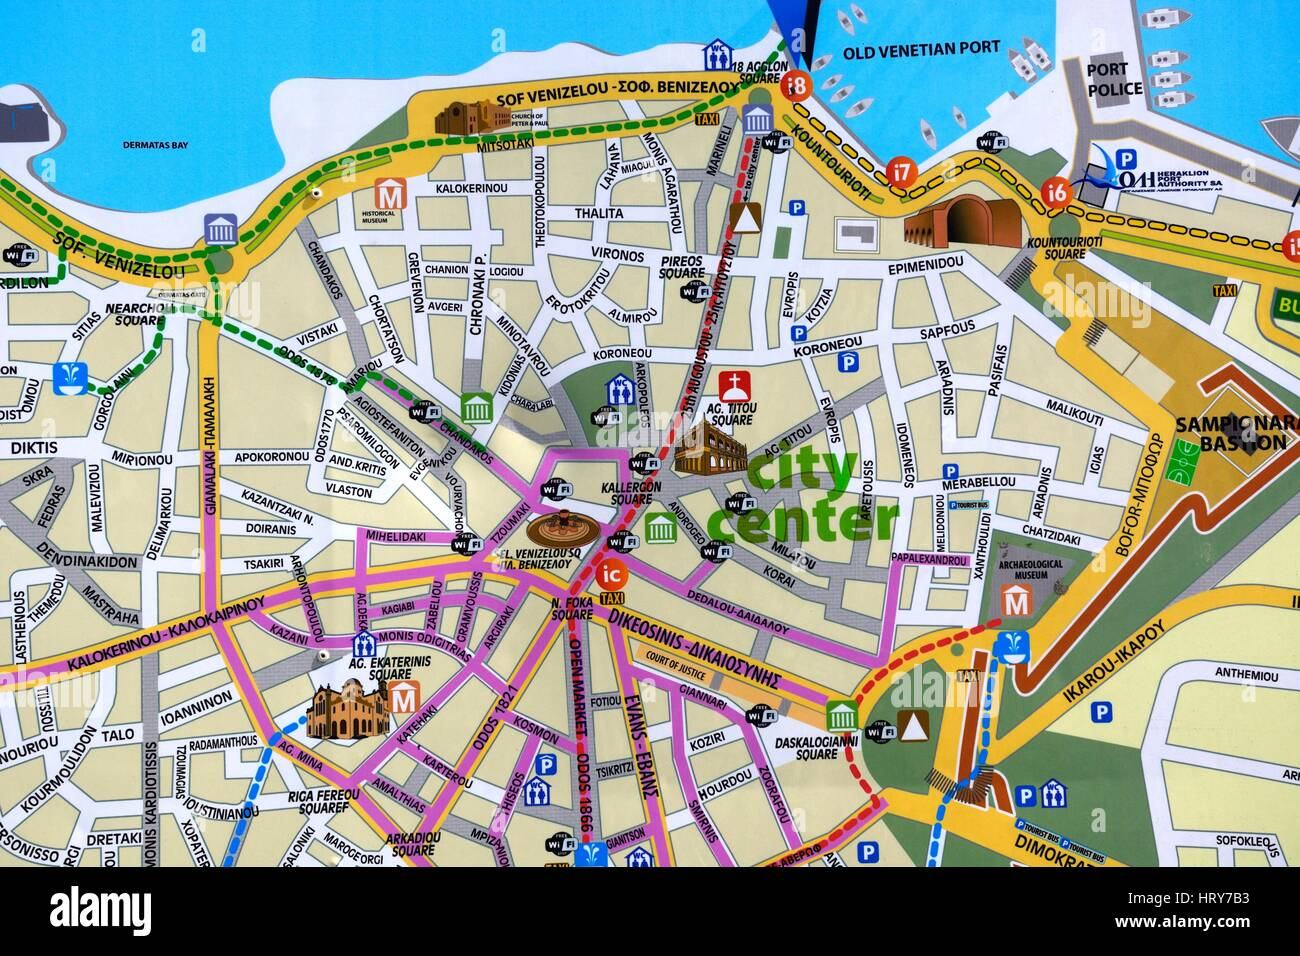 City centre town map showing tourist attractions Heraklion Crete